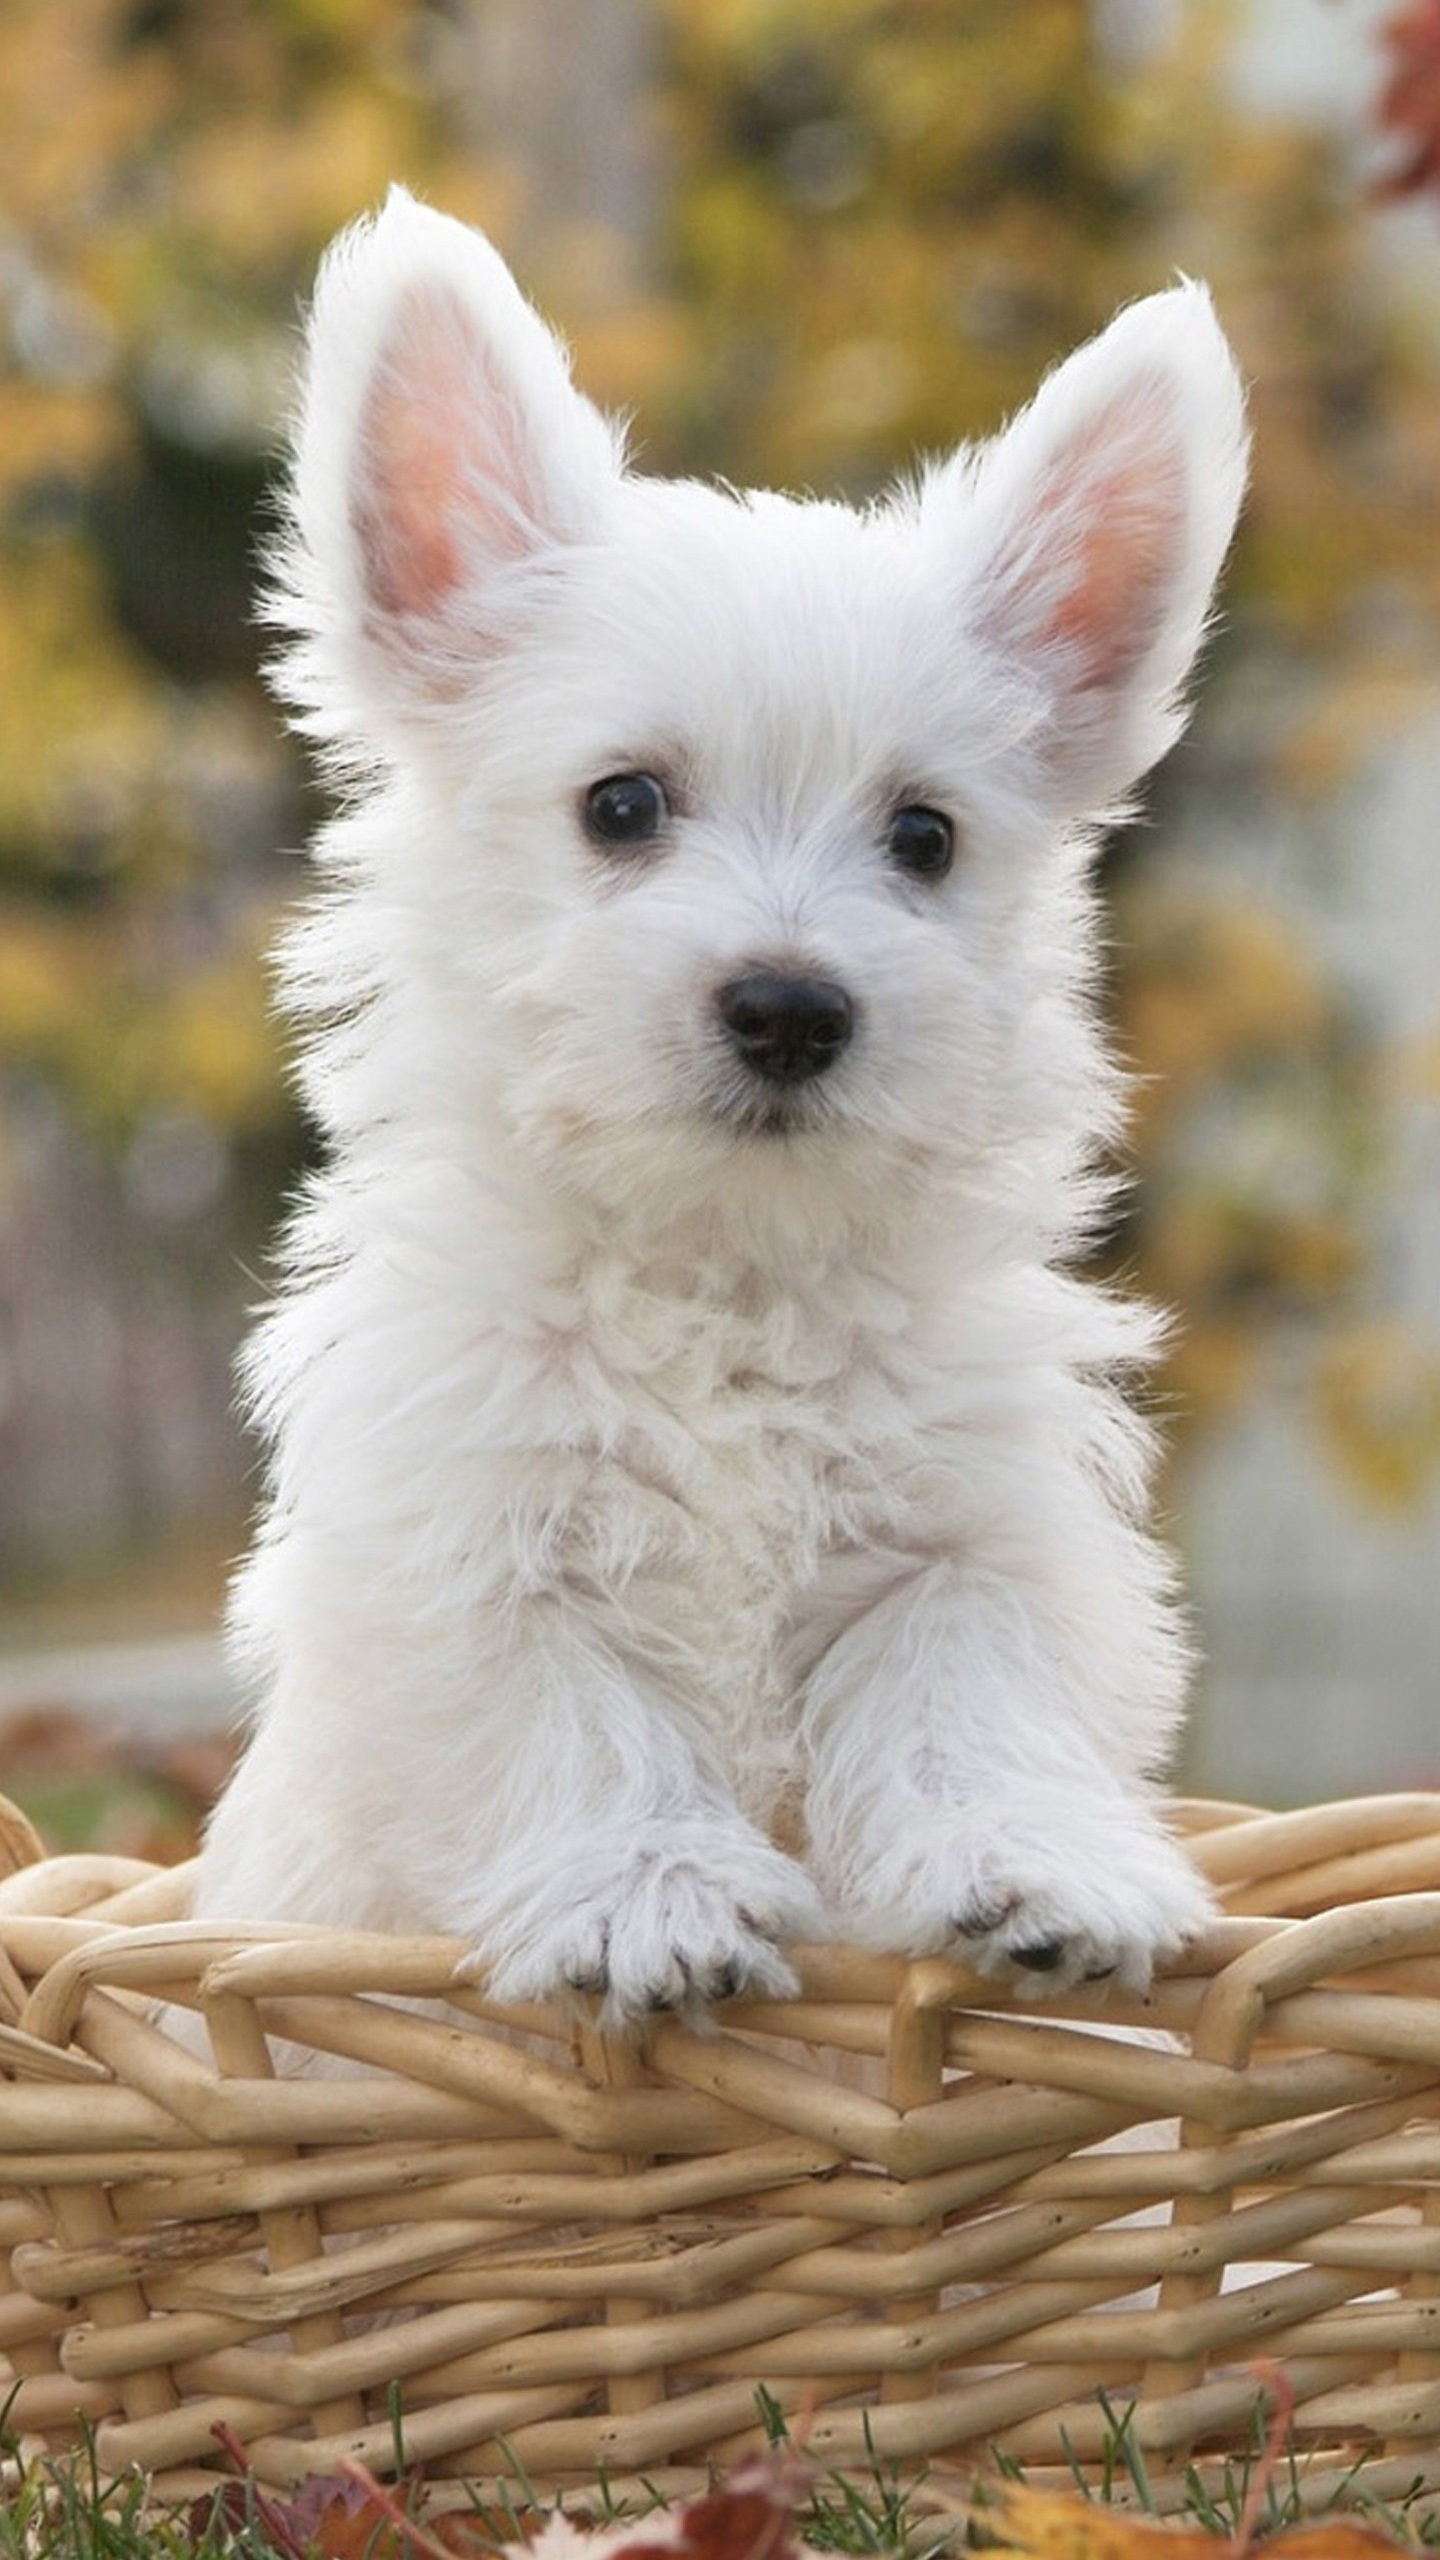 very cute white puppy wallpaper background